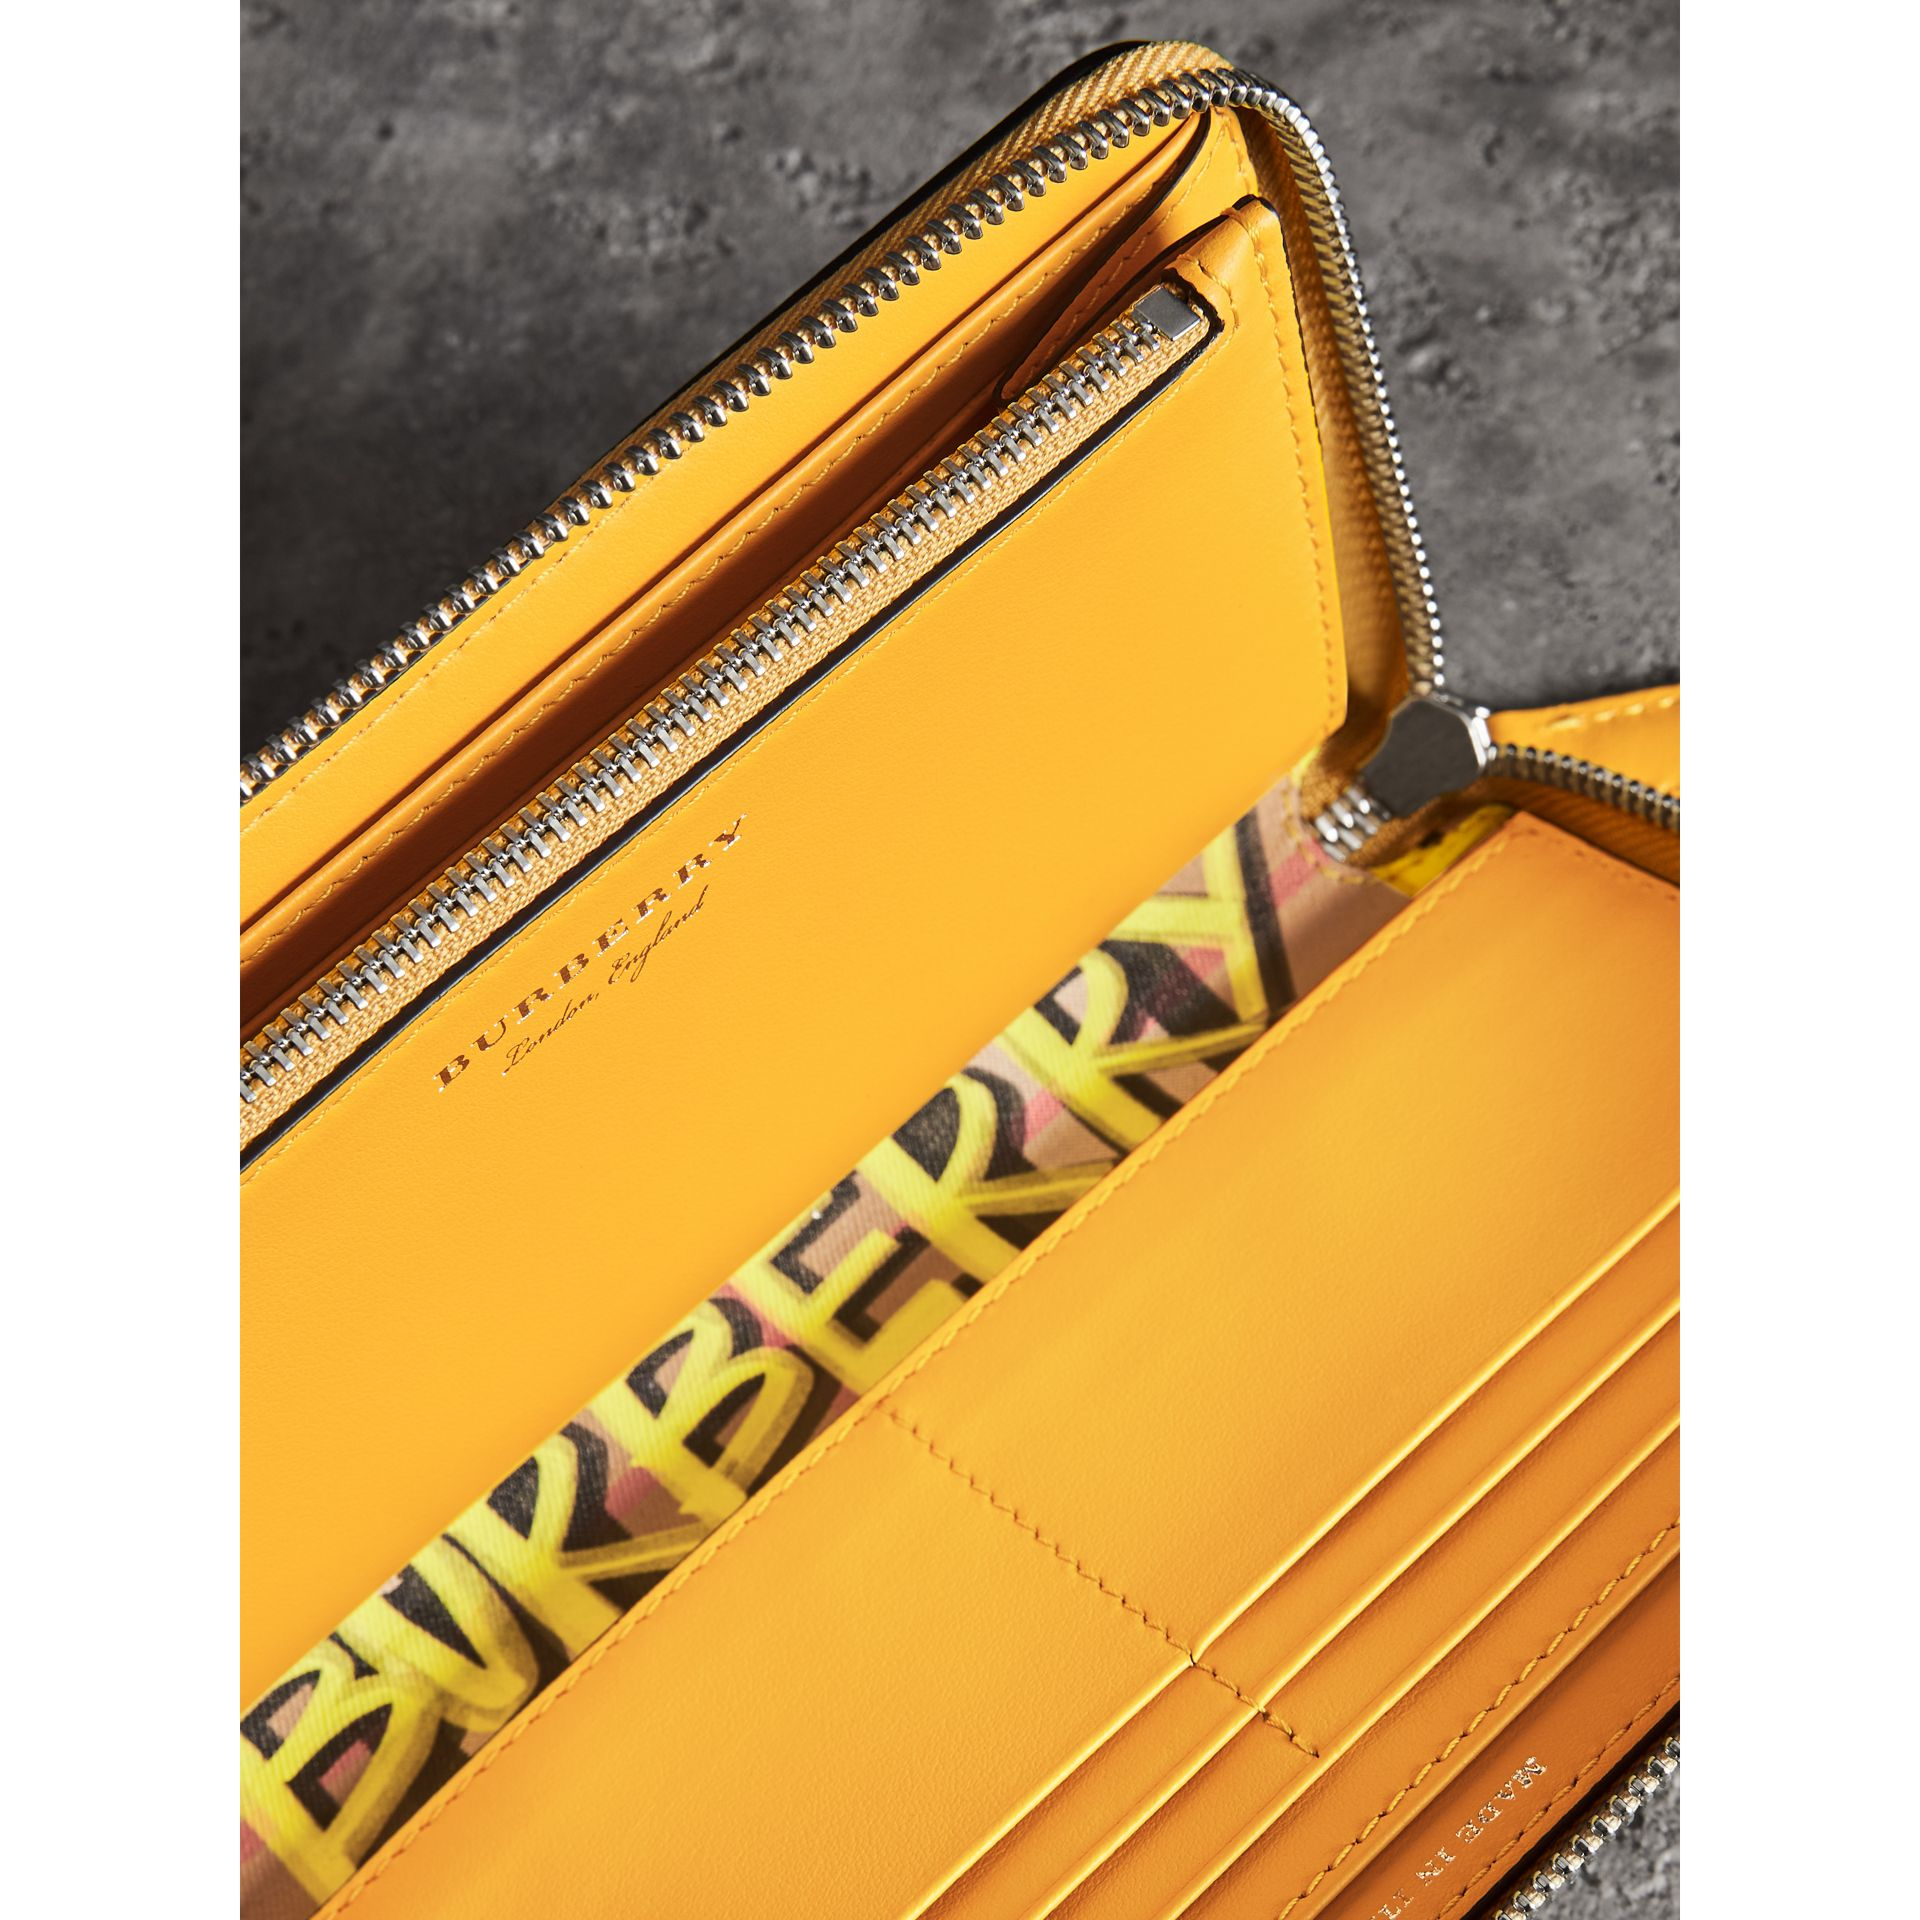 Graffiti Print Vintage Check Leather Ziparound Wallet in Yellow - Women | Burberry - gallery image 3